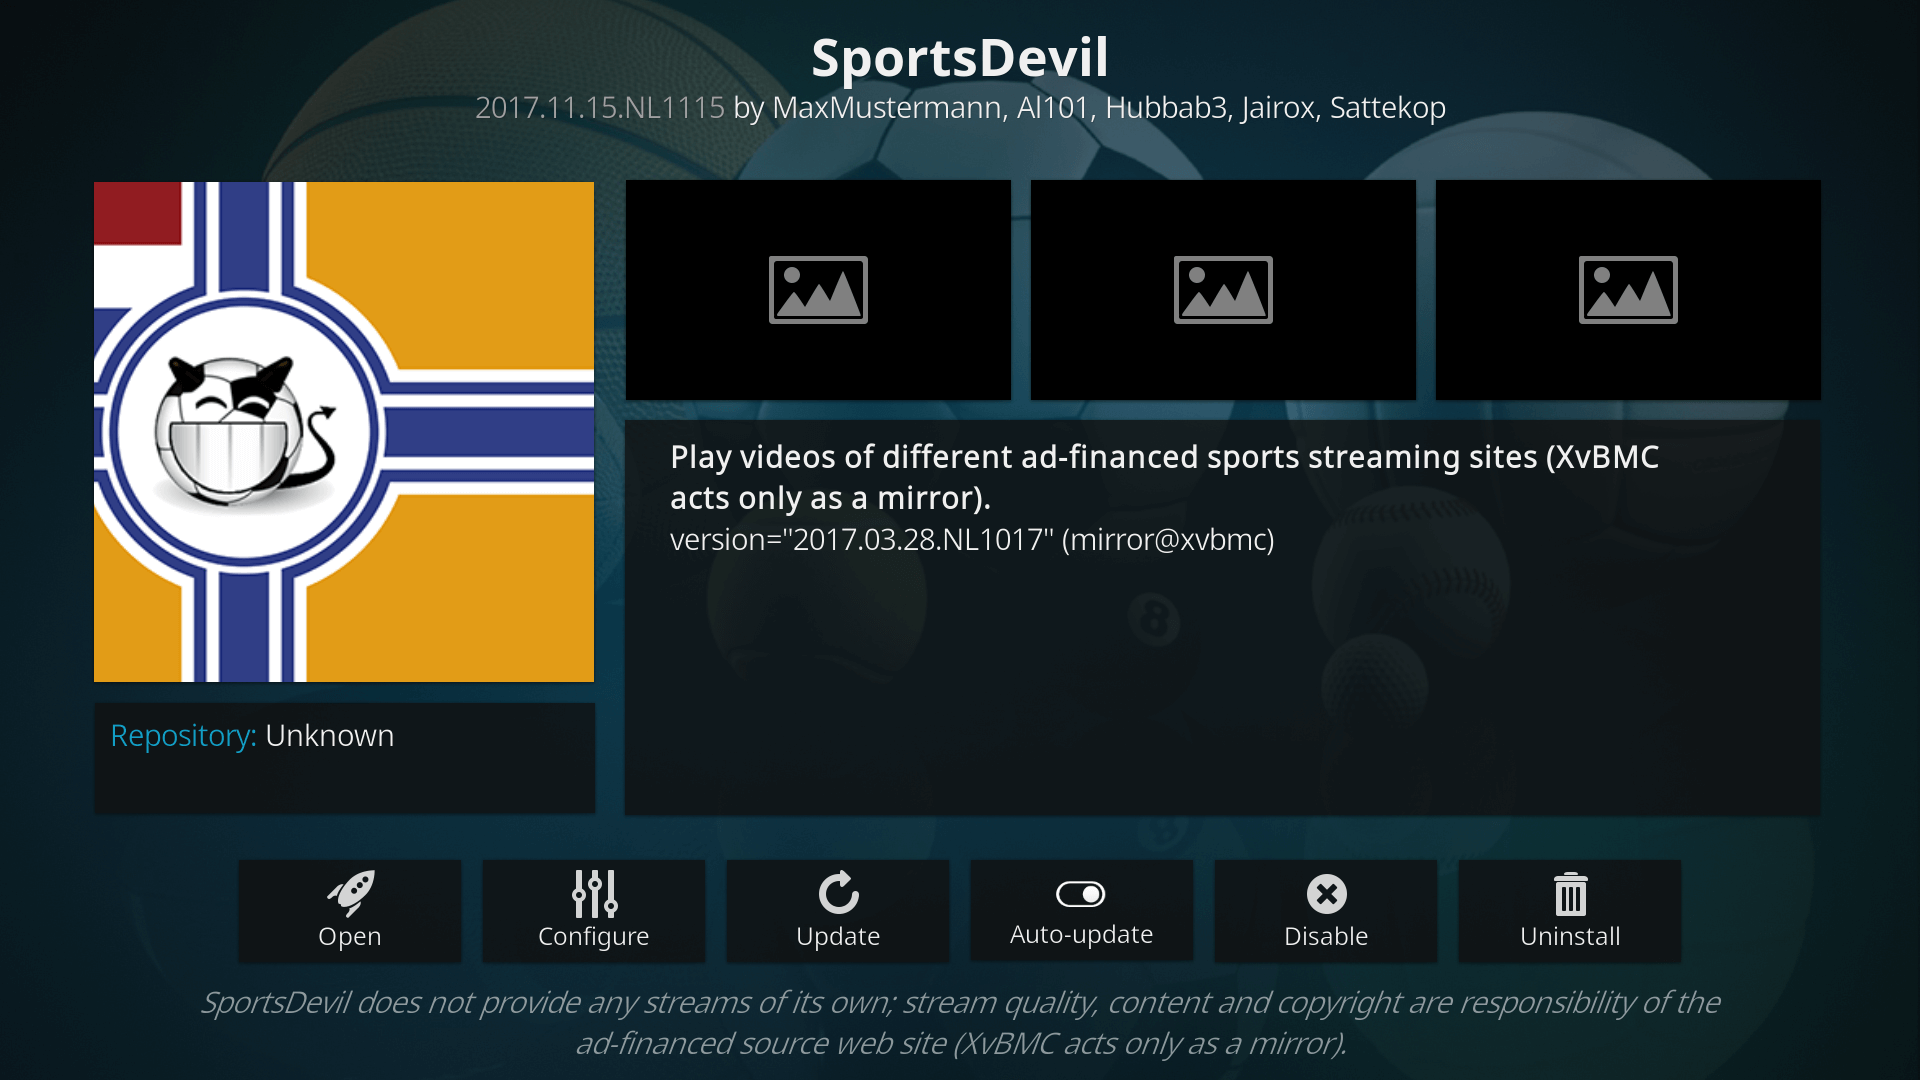 How to Install Sportsdevil Kodi addon on firestick krypton